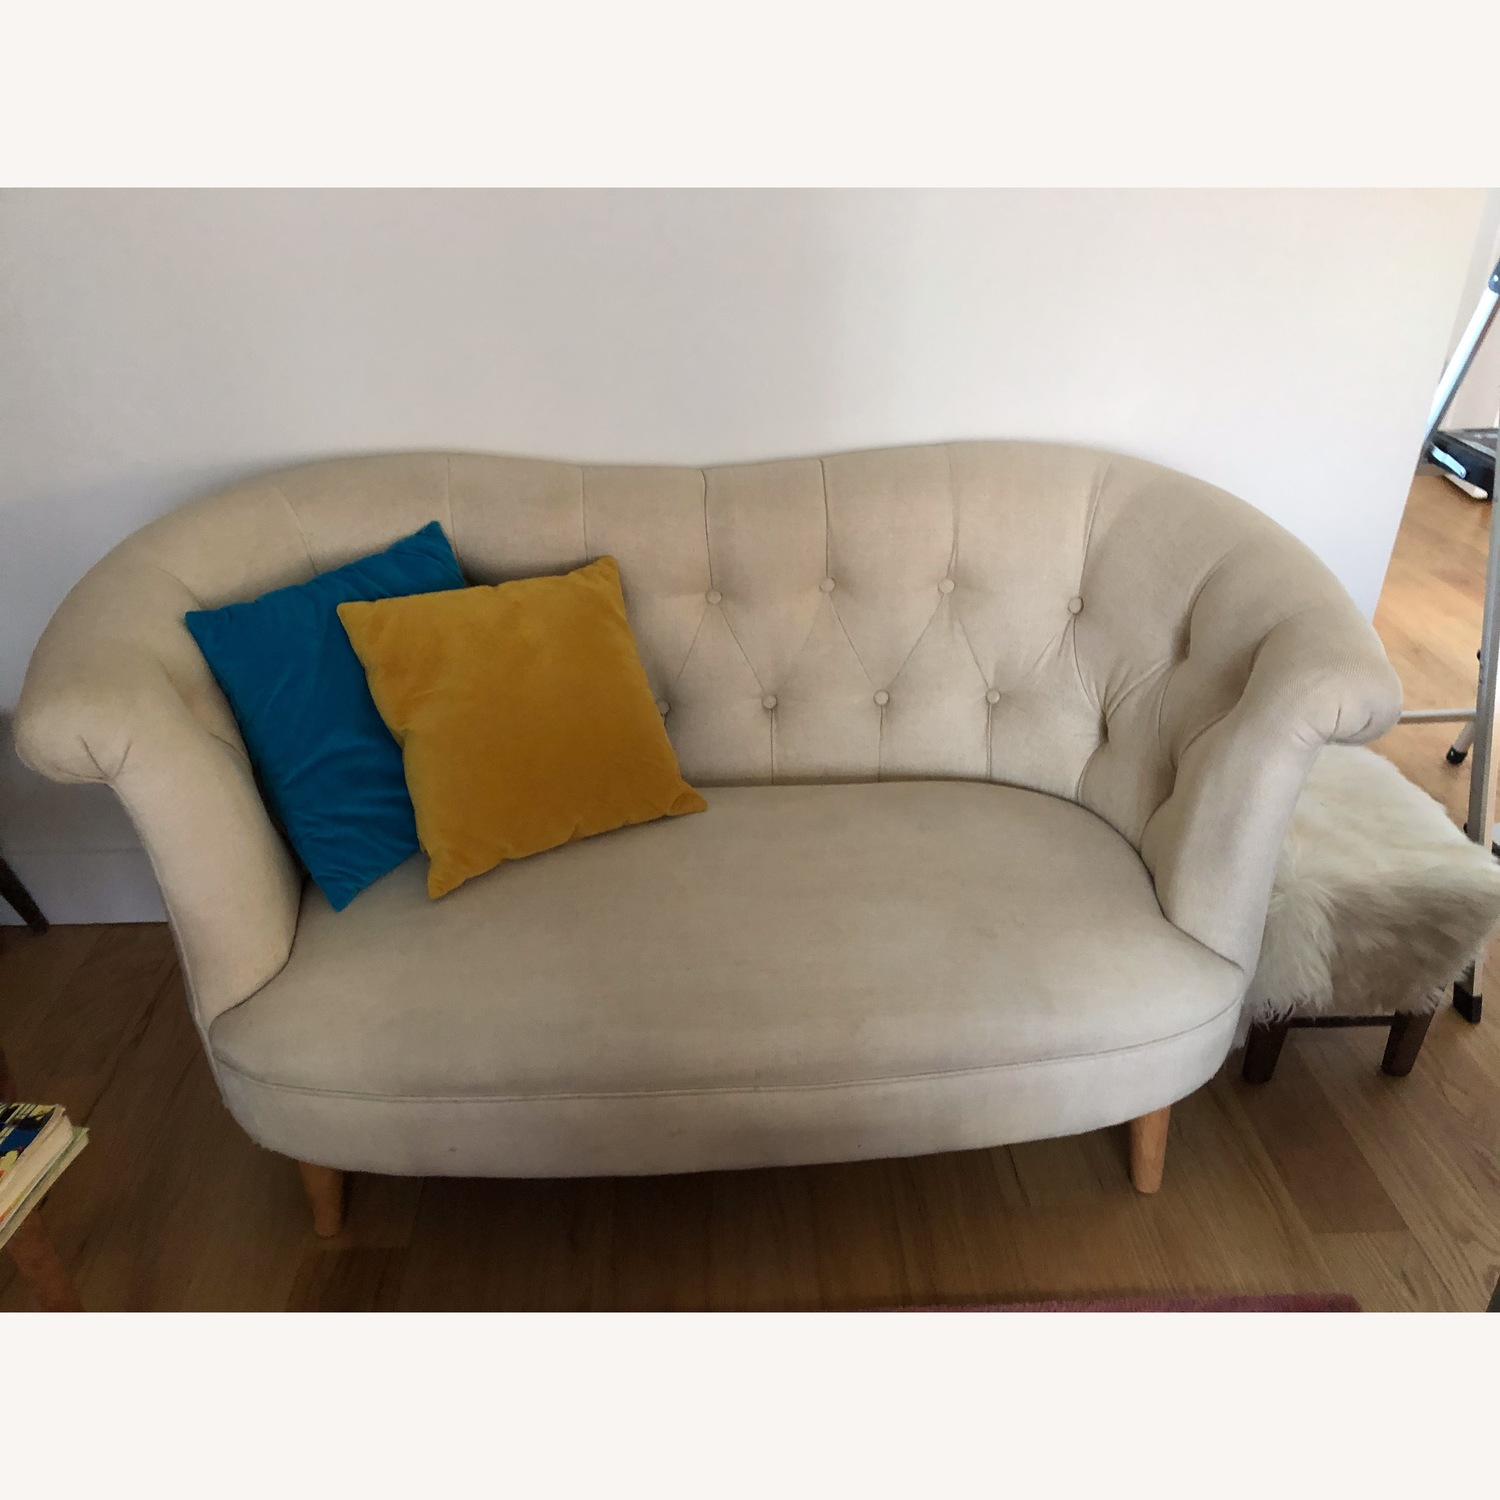 Pier 1 Tufted Loveseat - image-1